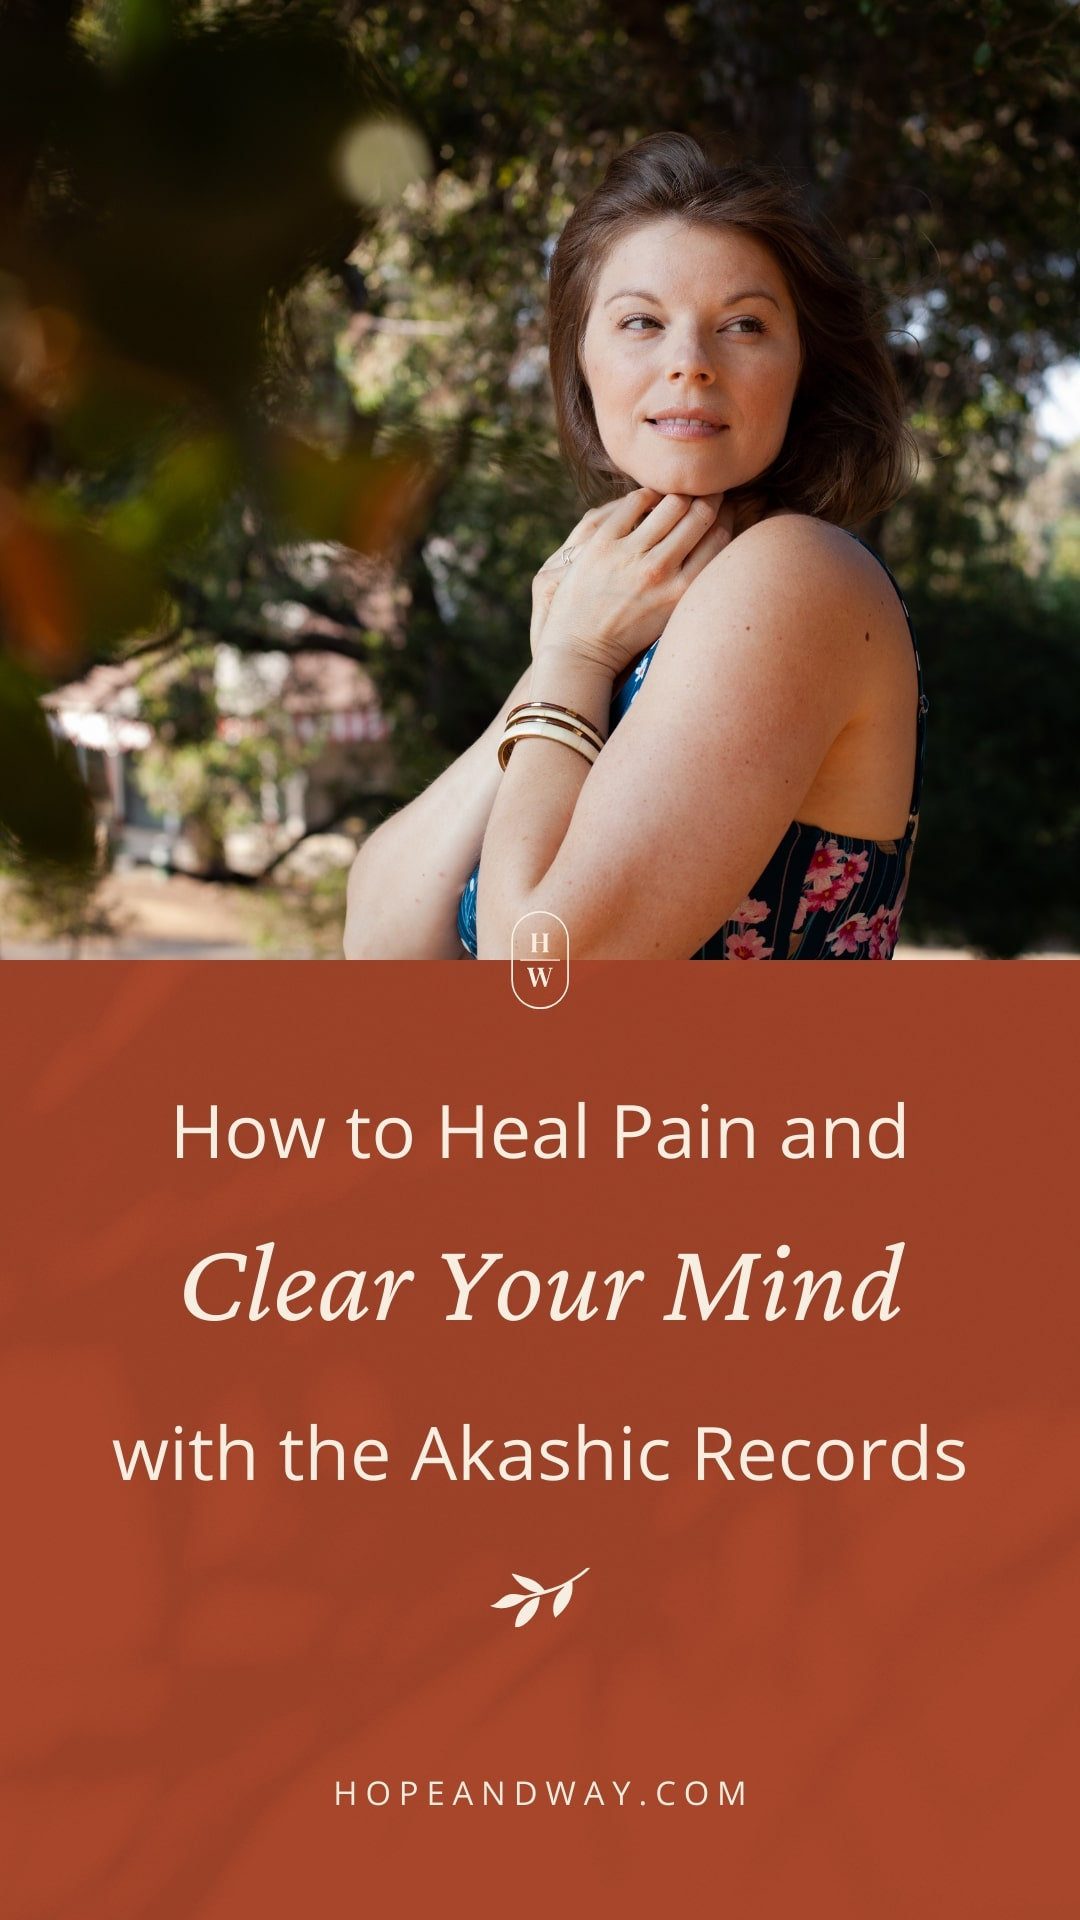 How to Heal Pain and Clear Your Mind with the Akashic Records? Interview with Helen Vonderheide